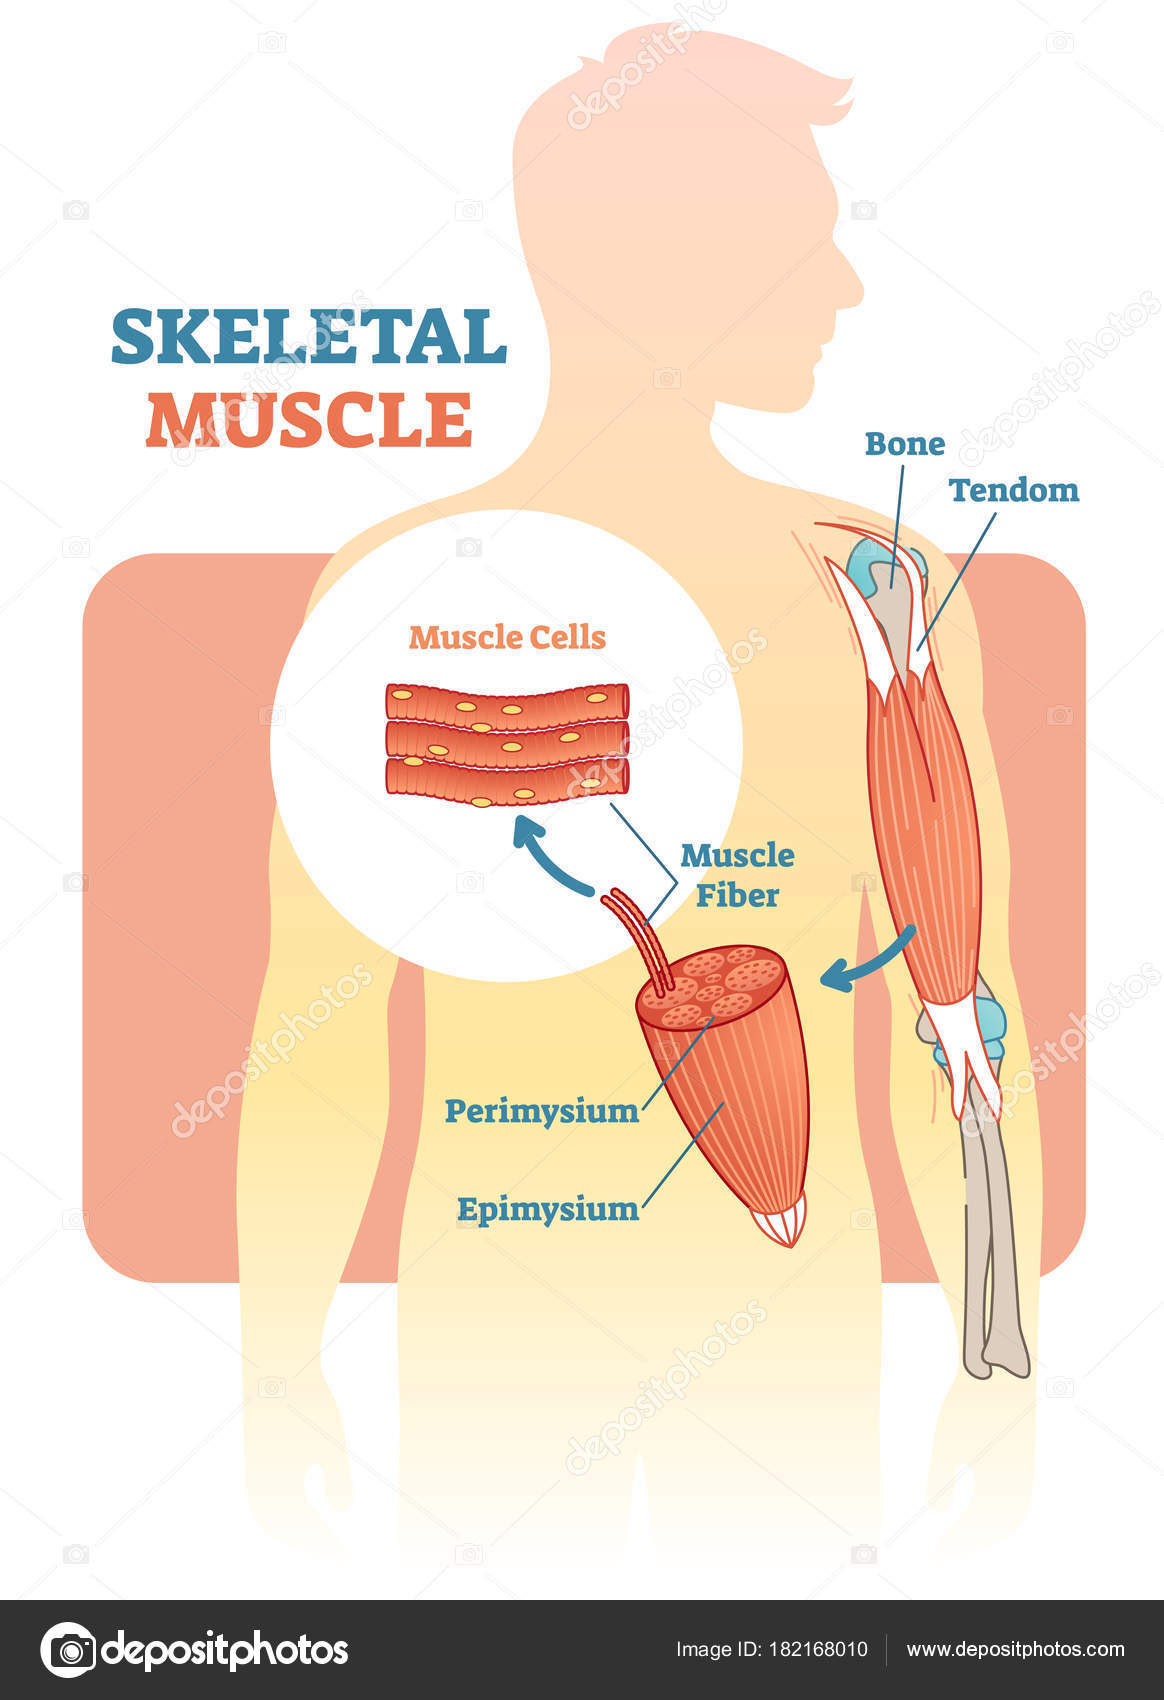 Skeletal Muscle Vector Illustration Diagram Anatomical Scheme With